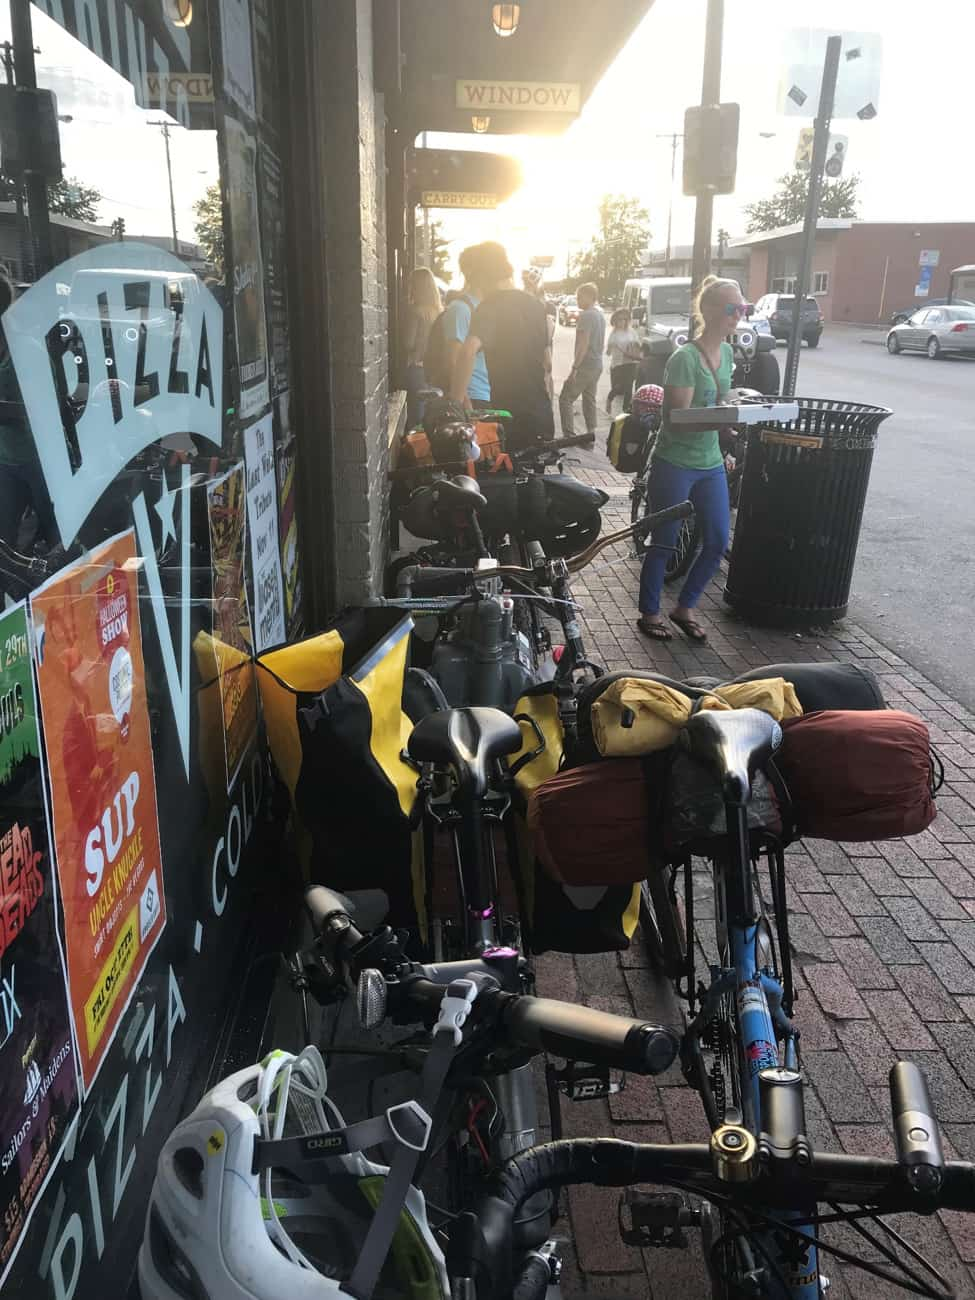 Bikes lined up and parked on a red brick sidewalk, next to the window of a pizza shop